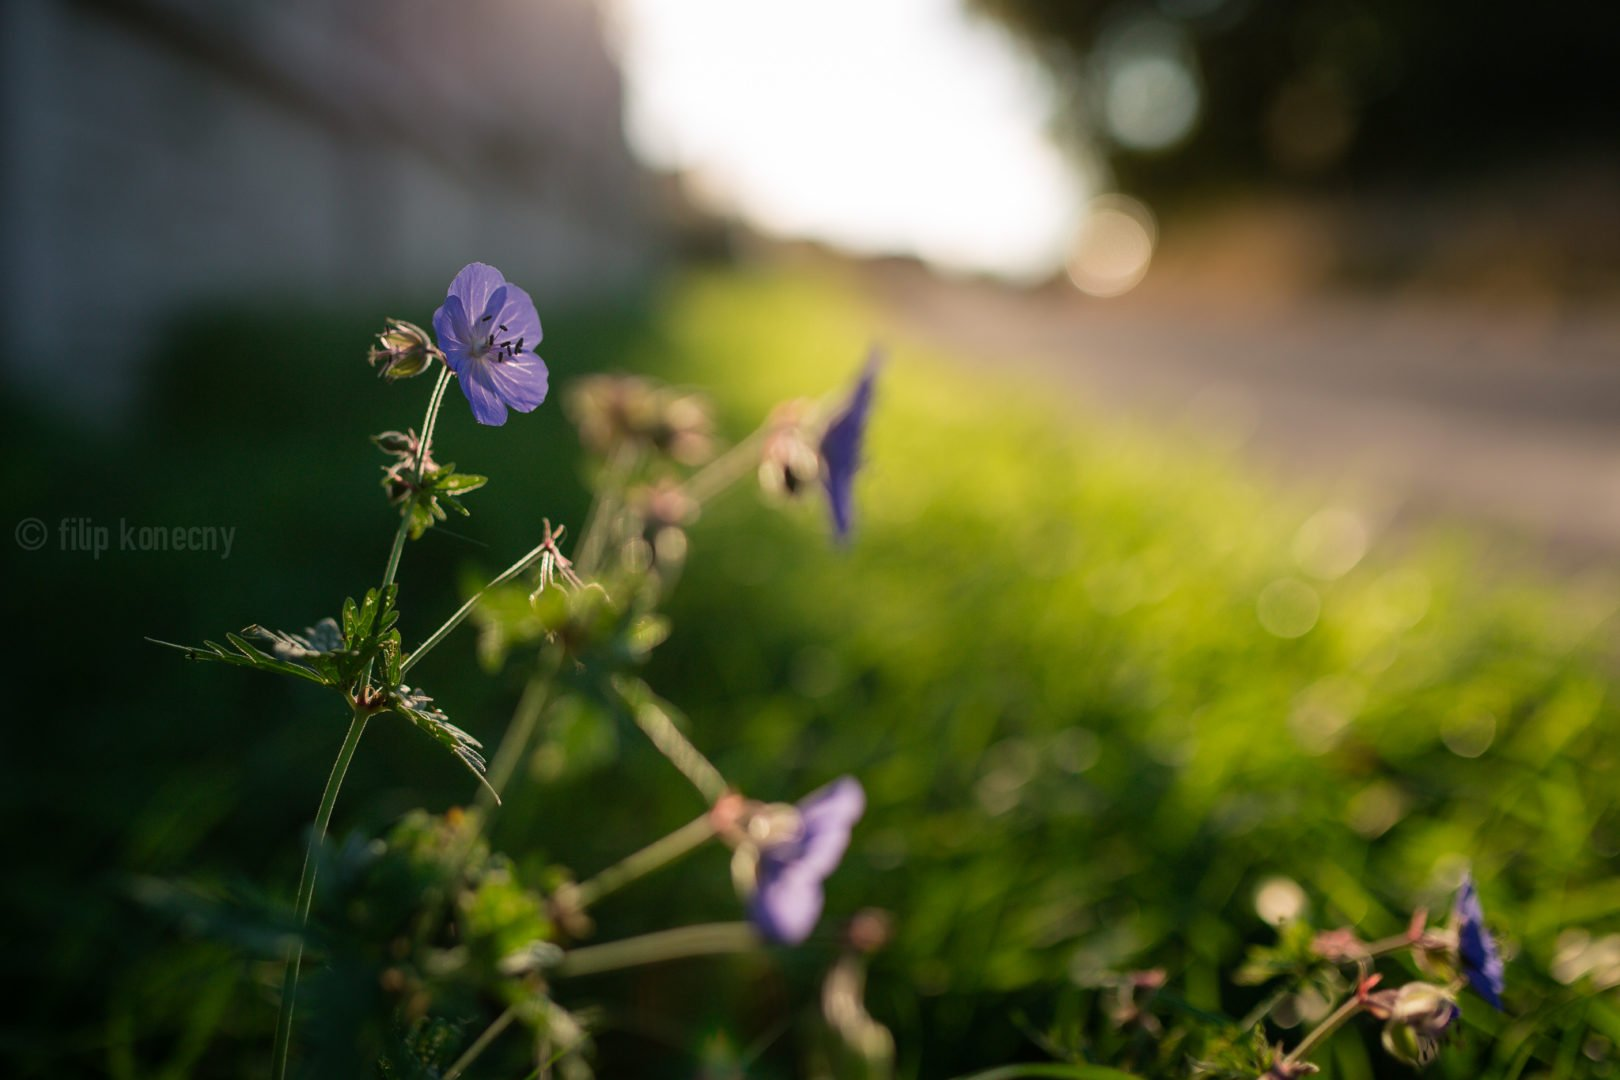 pretty flower at sunset by the road